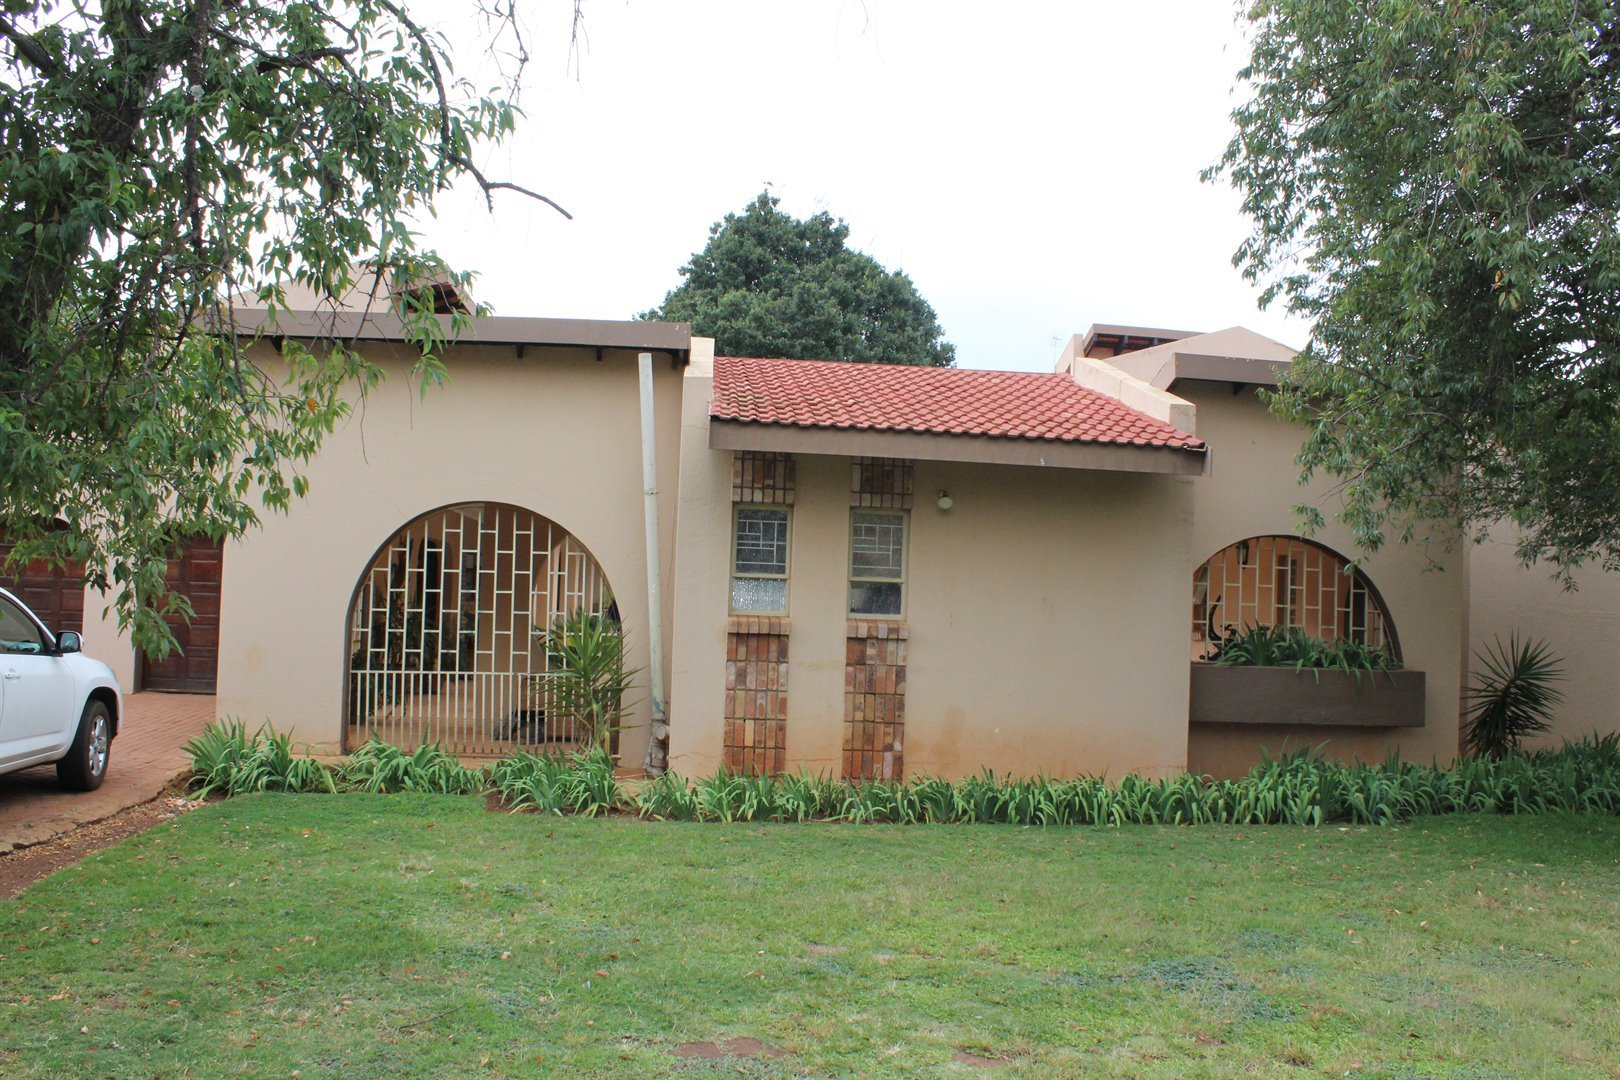 Property and Houses for sale in Carletonville (All), Farms, 5 Bedrooms - ZAR 3,200,000